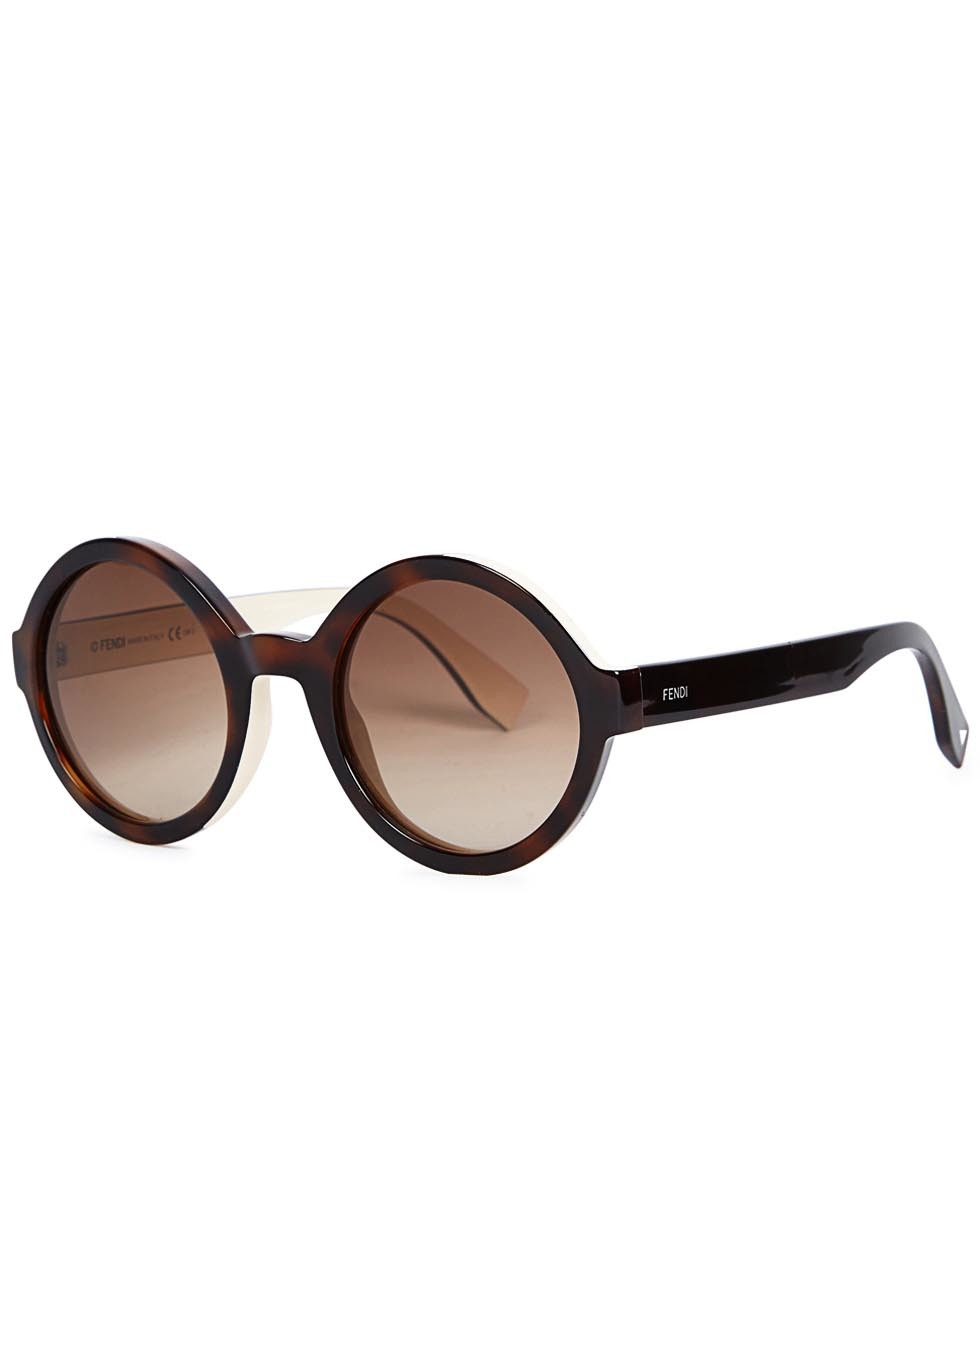 Tortoiseshell Round Frame Sunglasses - predominant colour: chocolate brown; occasions: casual, holiday; style: round; size: standard; material: plastic/rubber; pattern: plain; finish: plain; season: a/w 2015; wardrobe: basic